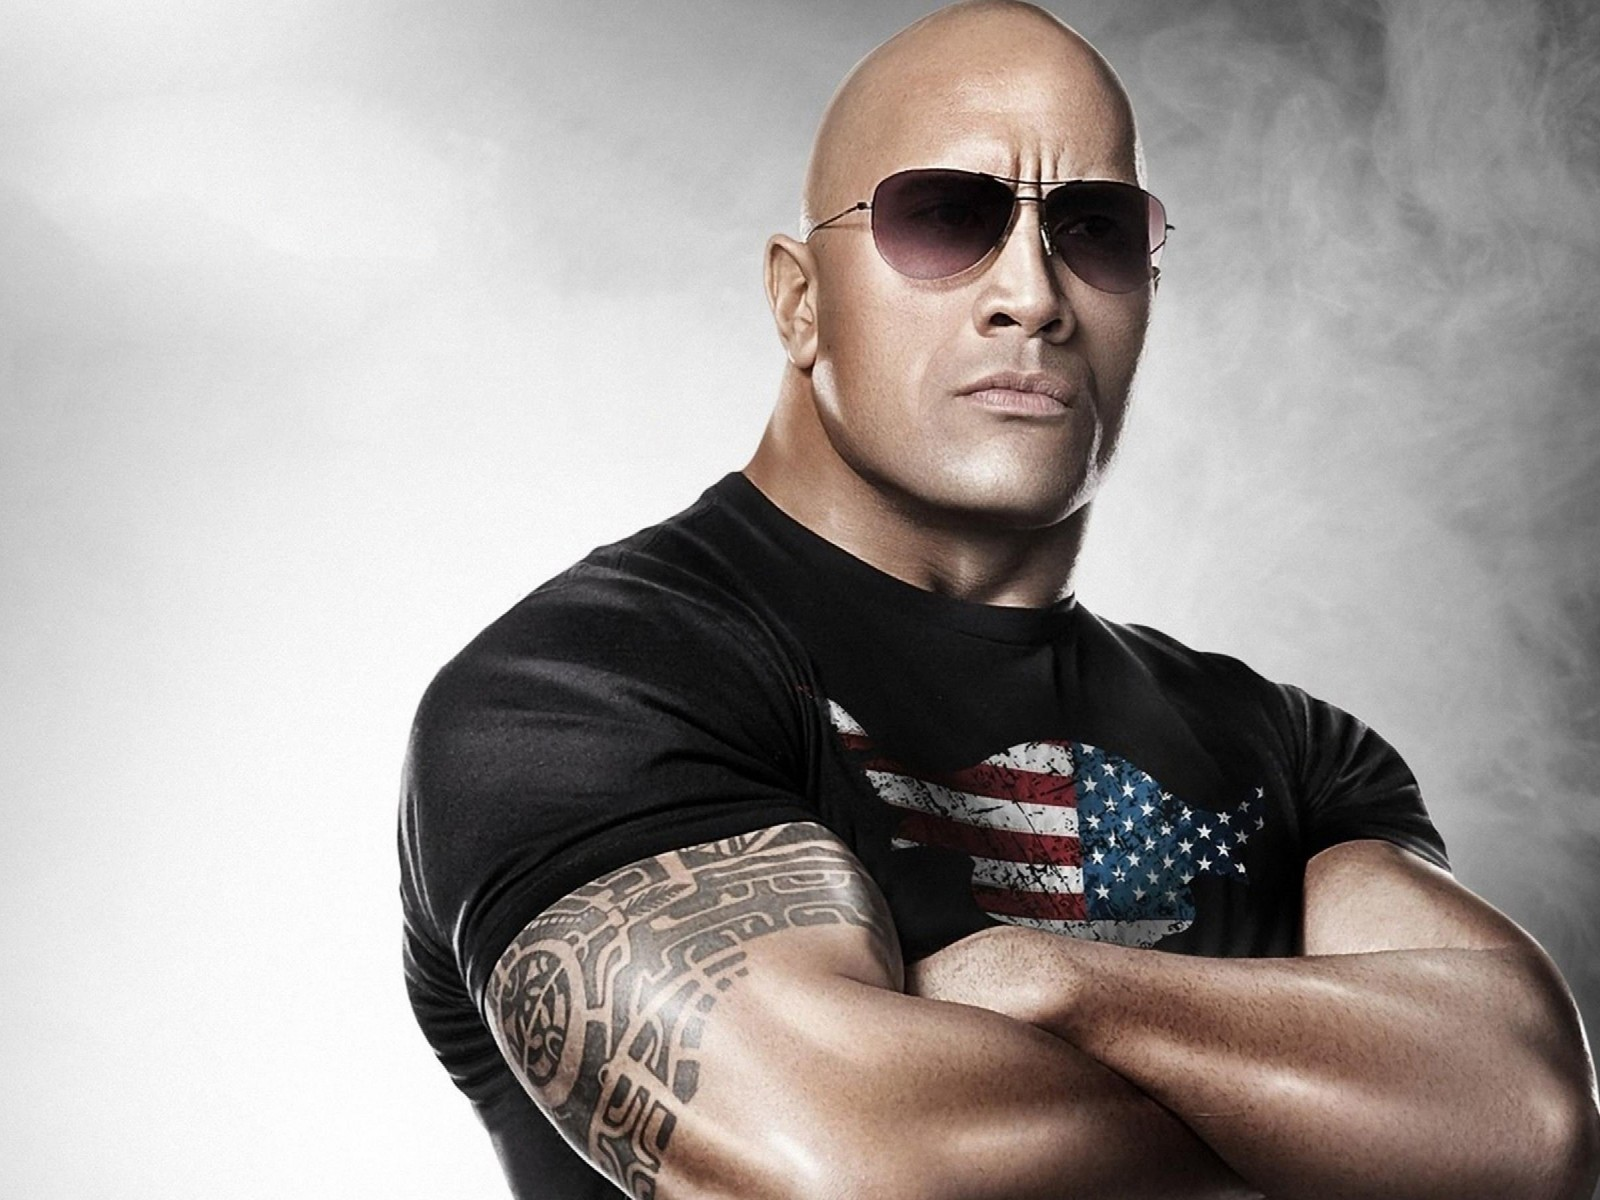 Dwayne Johnson The Rock Wallpaper for Desktop 1600x1200